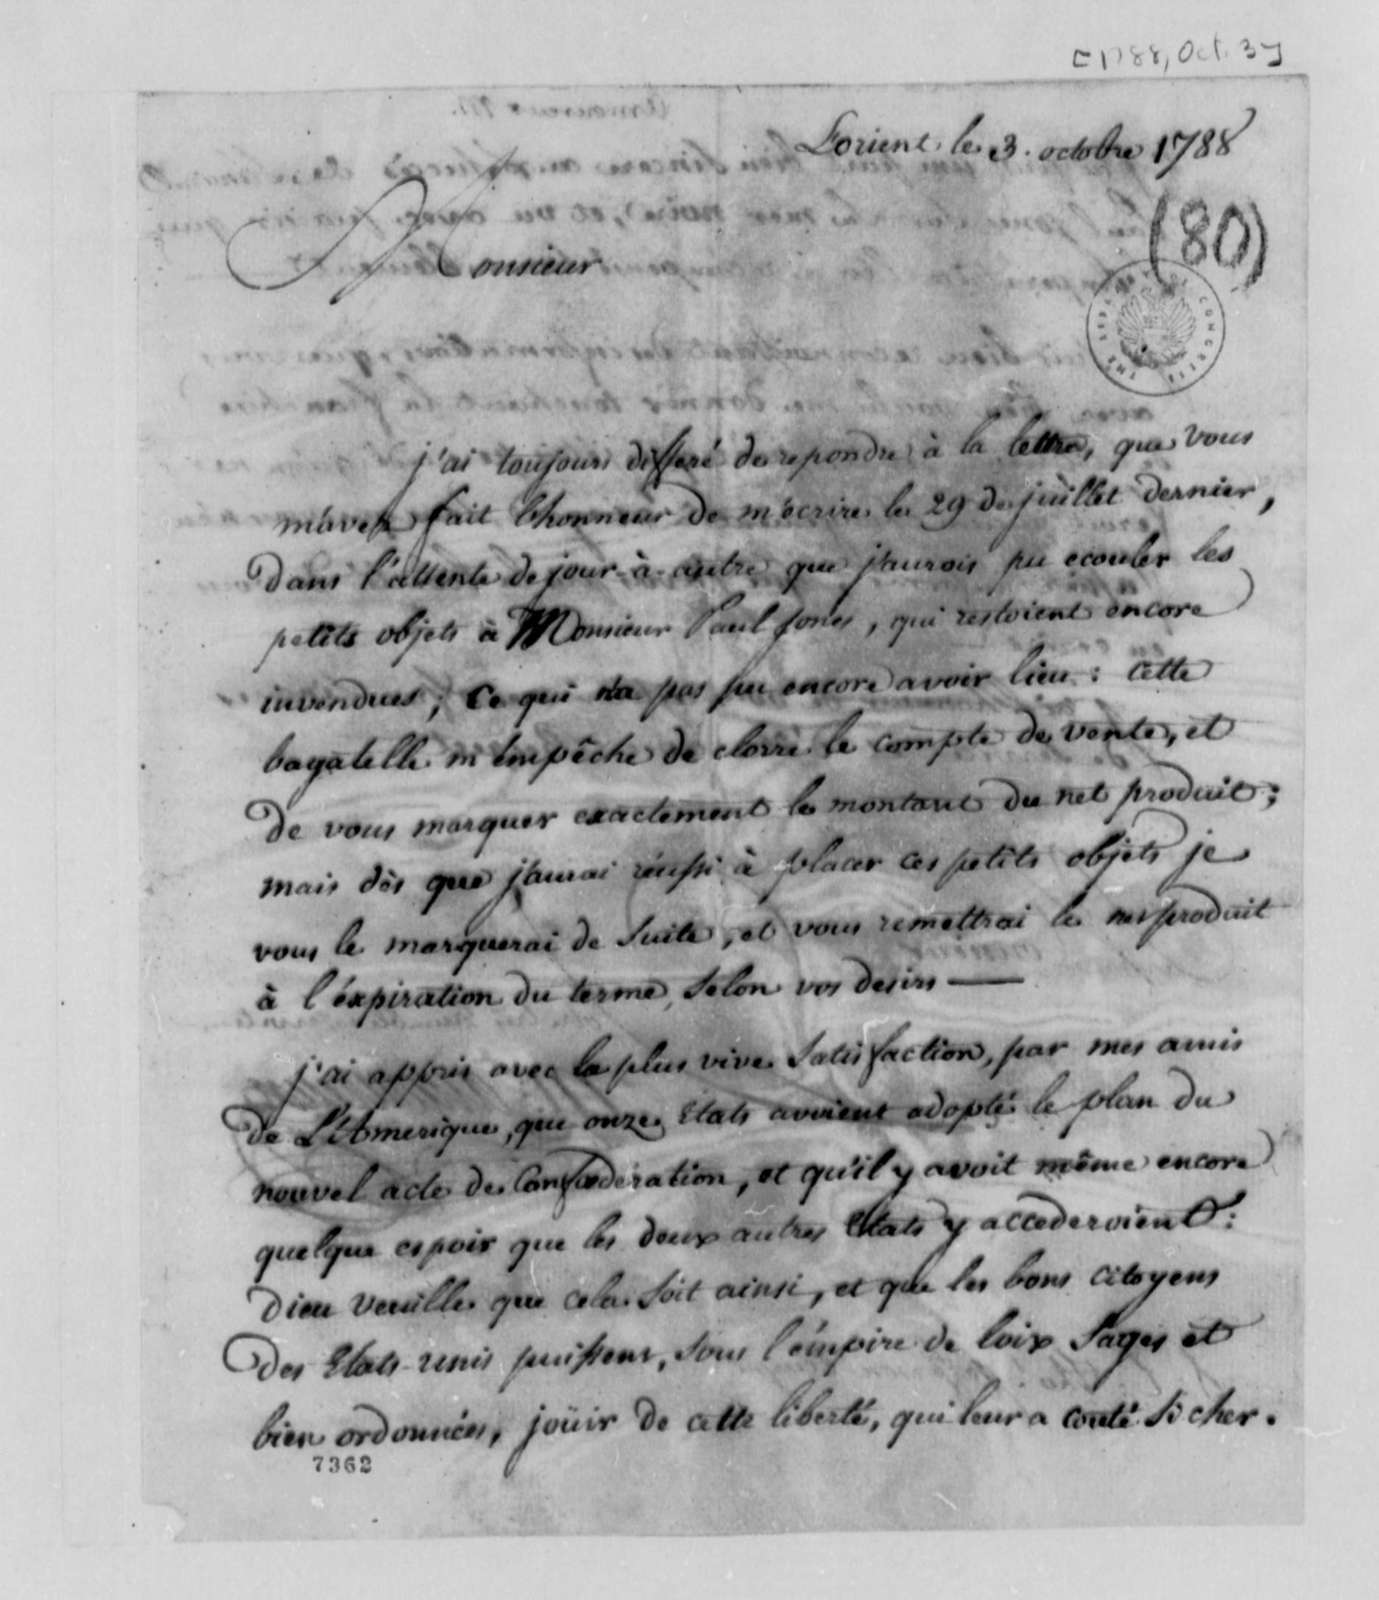 Amoureux to Thomas Jefferson, October 3, 1788, in French